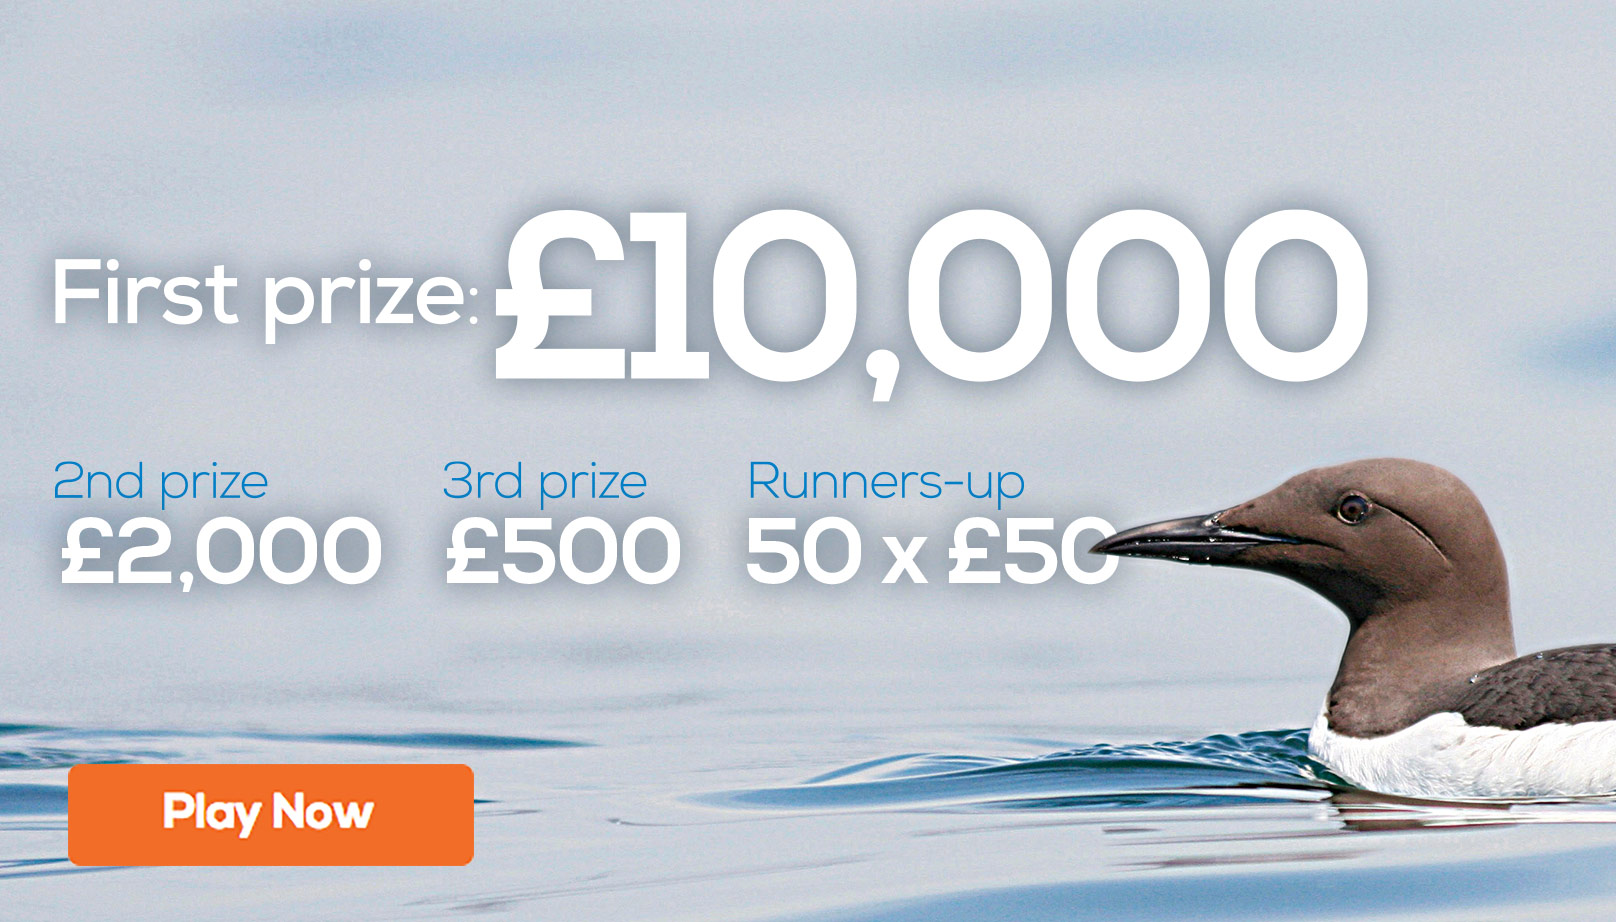 First prize: £10,000. Second prize: £2,000. Third prize: £500. Plus 50 runners up prizes of £50